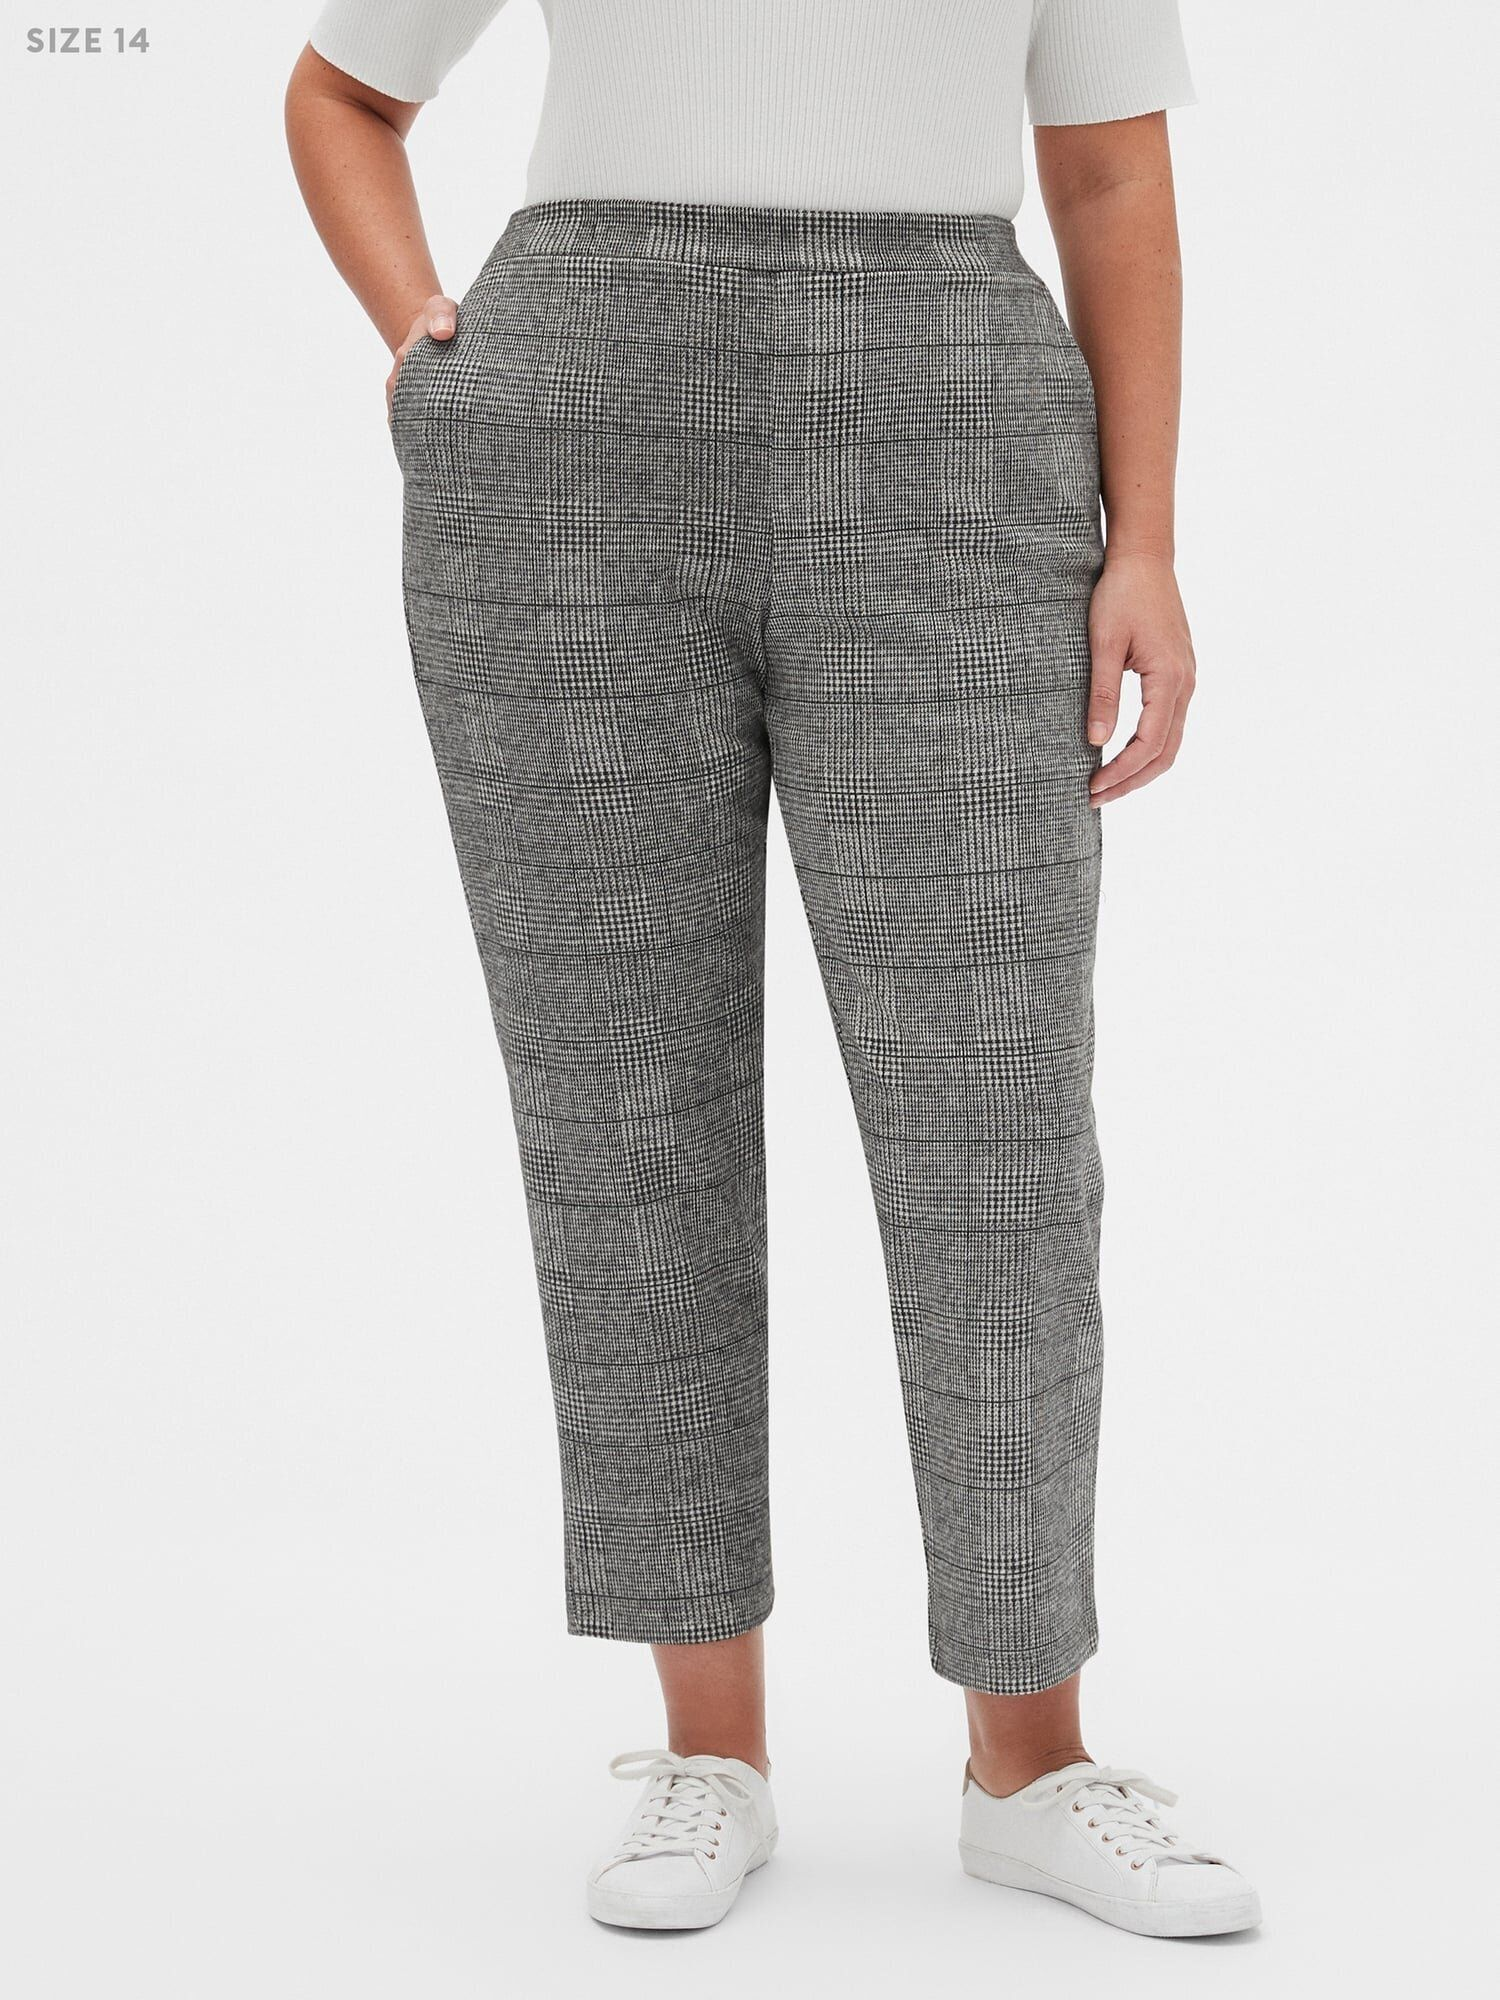 Plus Size Women/'s Mid Rise Flare Leg Dressy Pants Pull On Stretch Long For Work